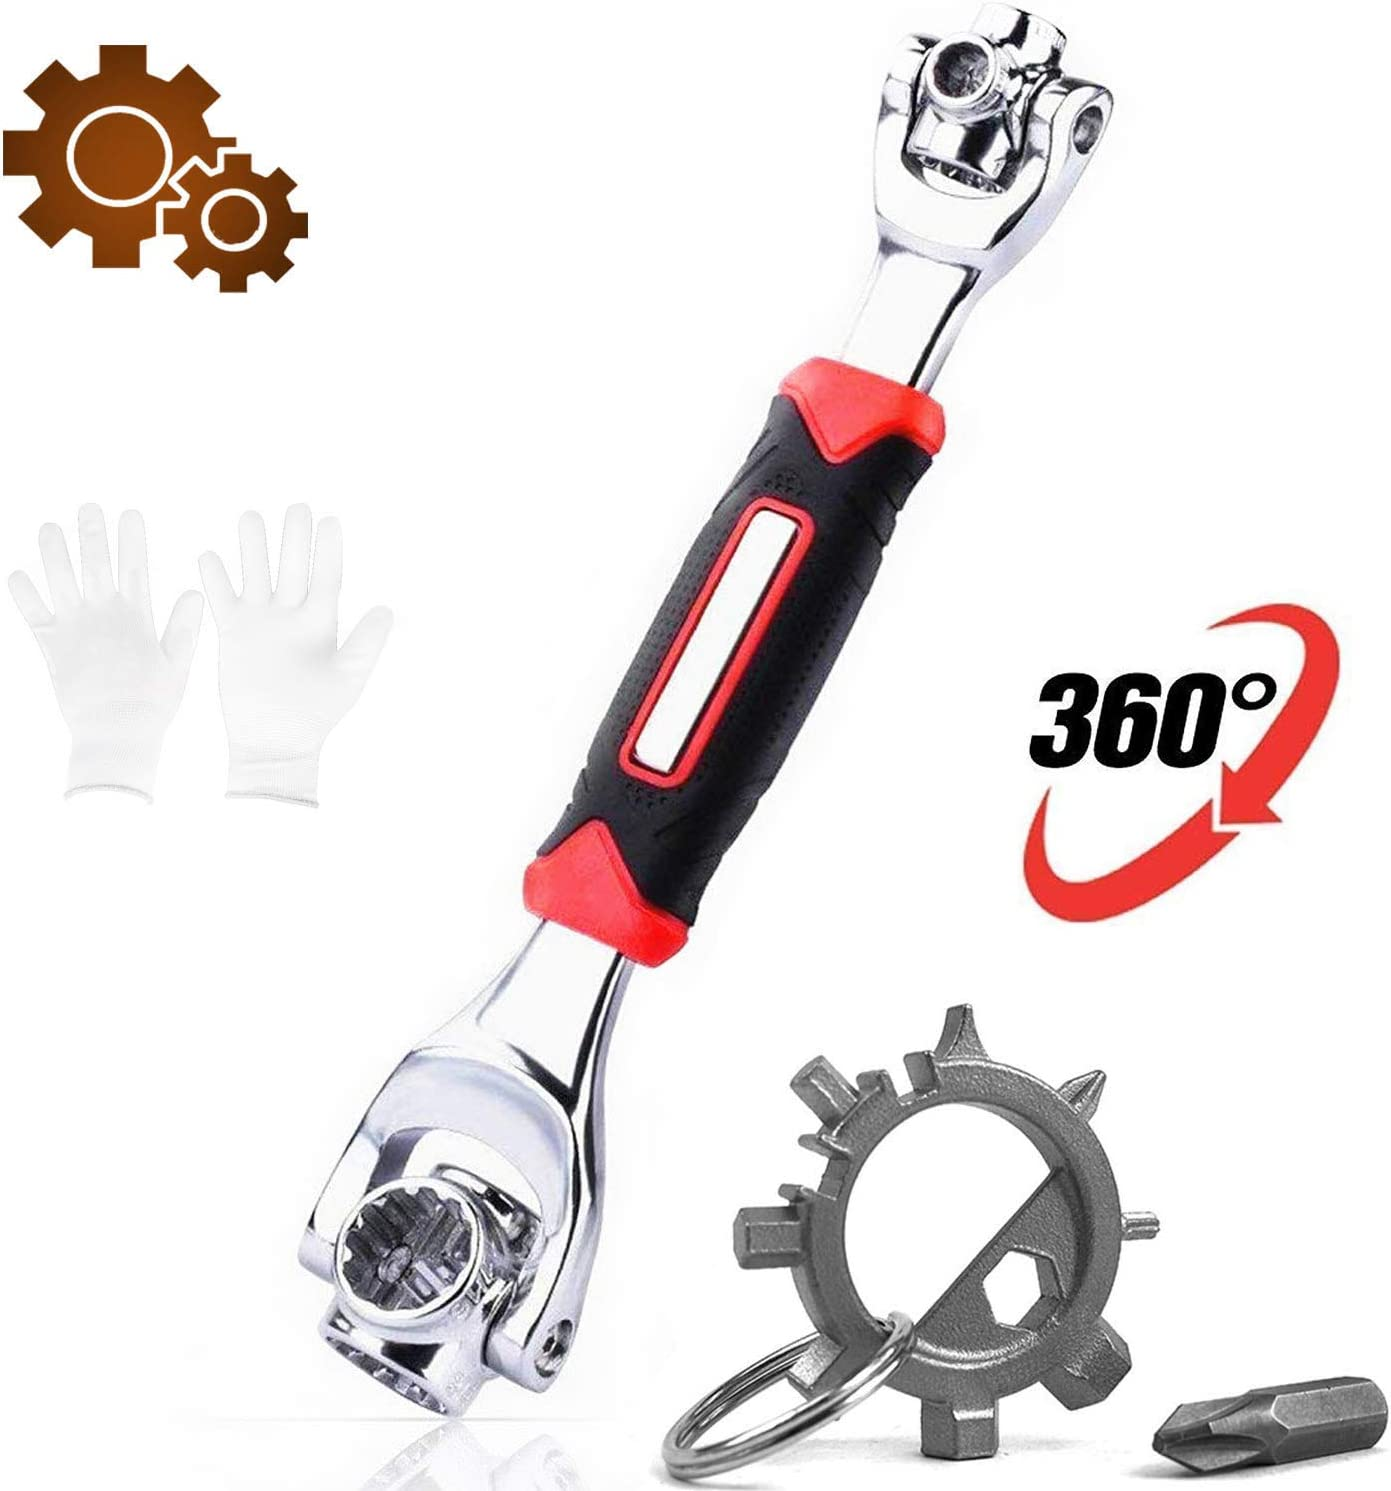 HUOFSE Universal Wrench 48 in 1 Socket Wrench Multifunction Wrench Tool 360 Degree Rotating Head, with a Portable Multi-Tool, Spanner Tool for Home and Car Repair